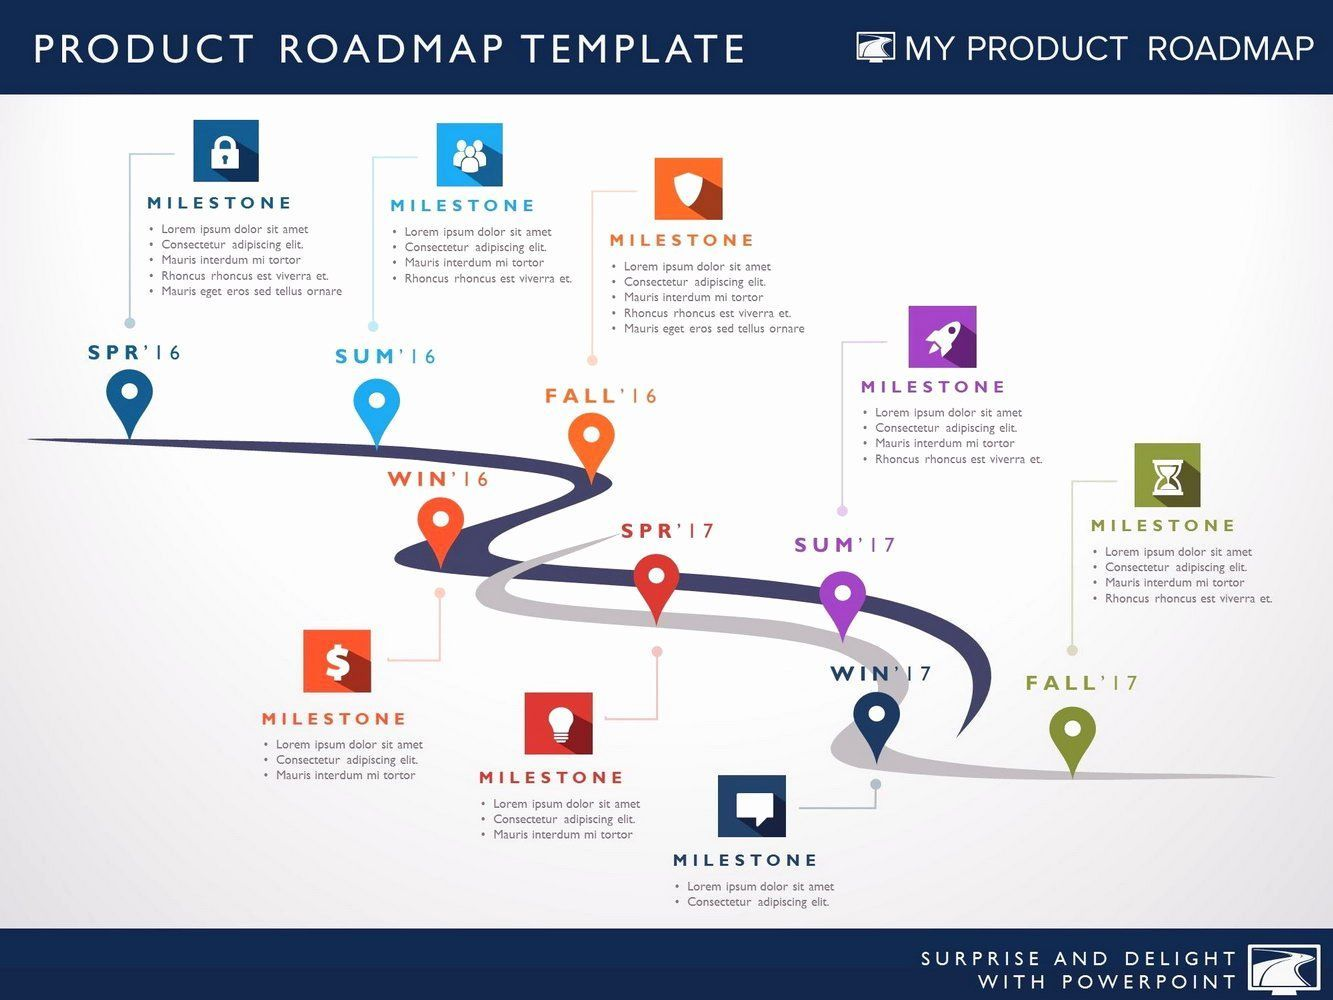 Road Map Powerpoint Template Free Luxury Product Roadmap Template